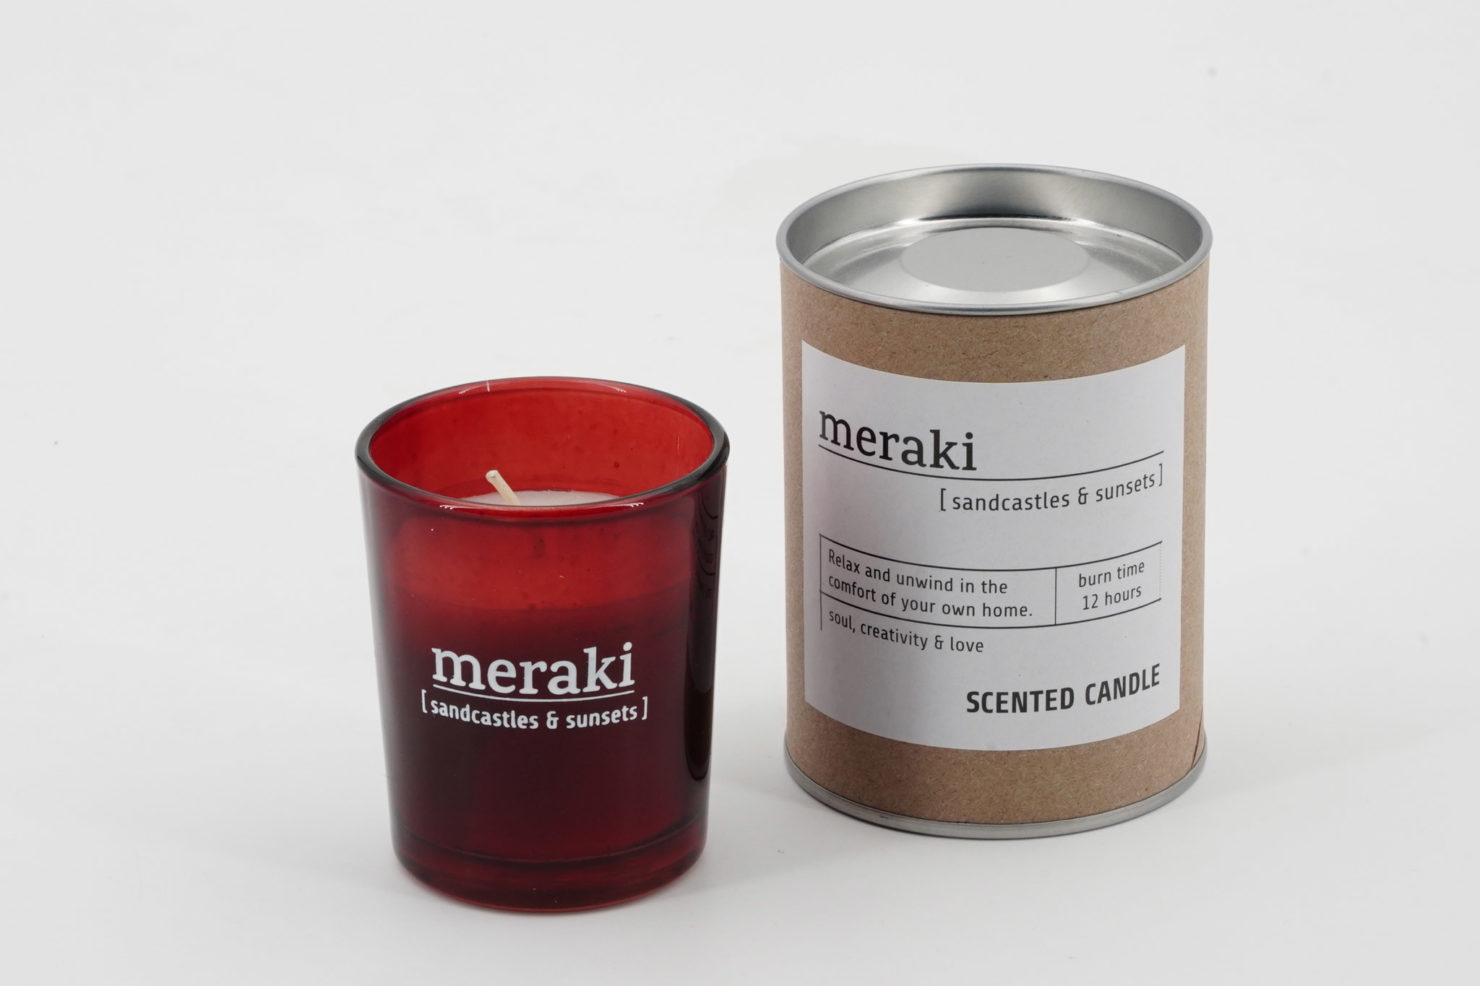 SCENTED CANDLE SANDCASTLES & SUNSETS - MERAKI